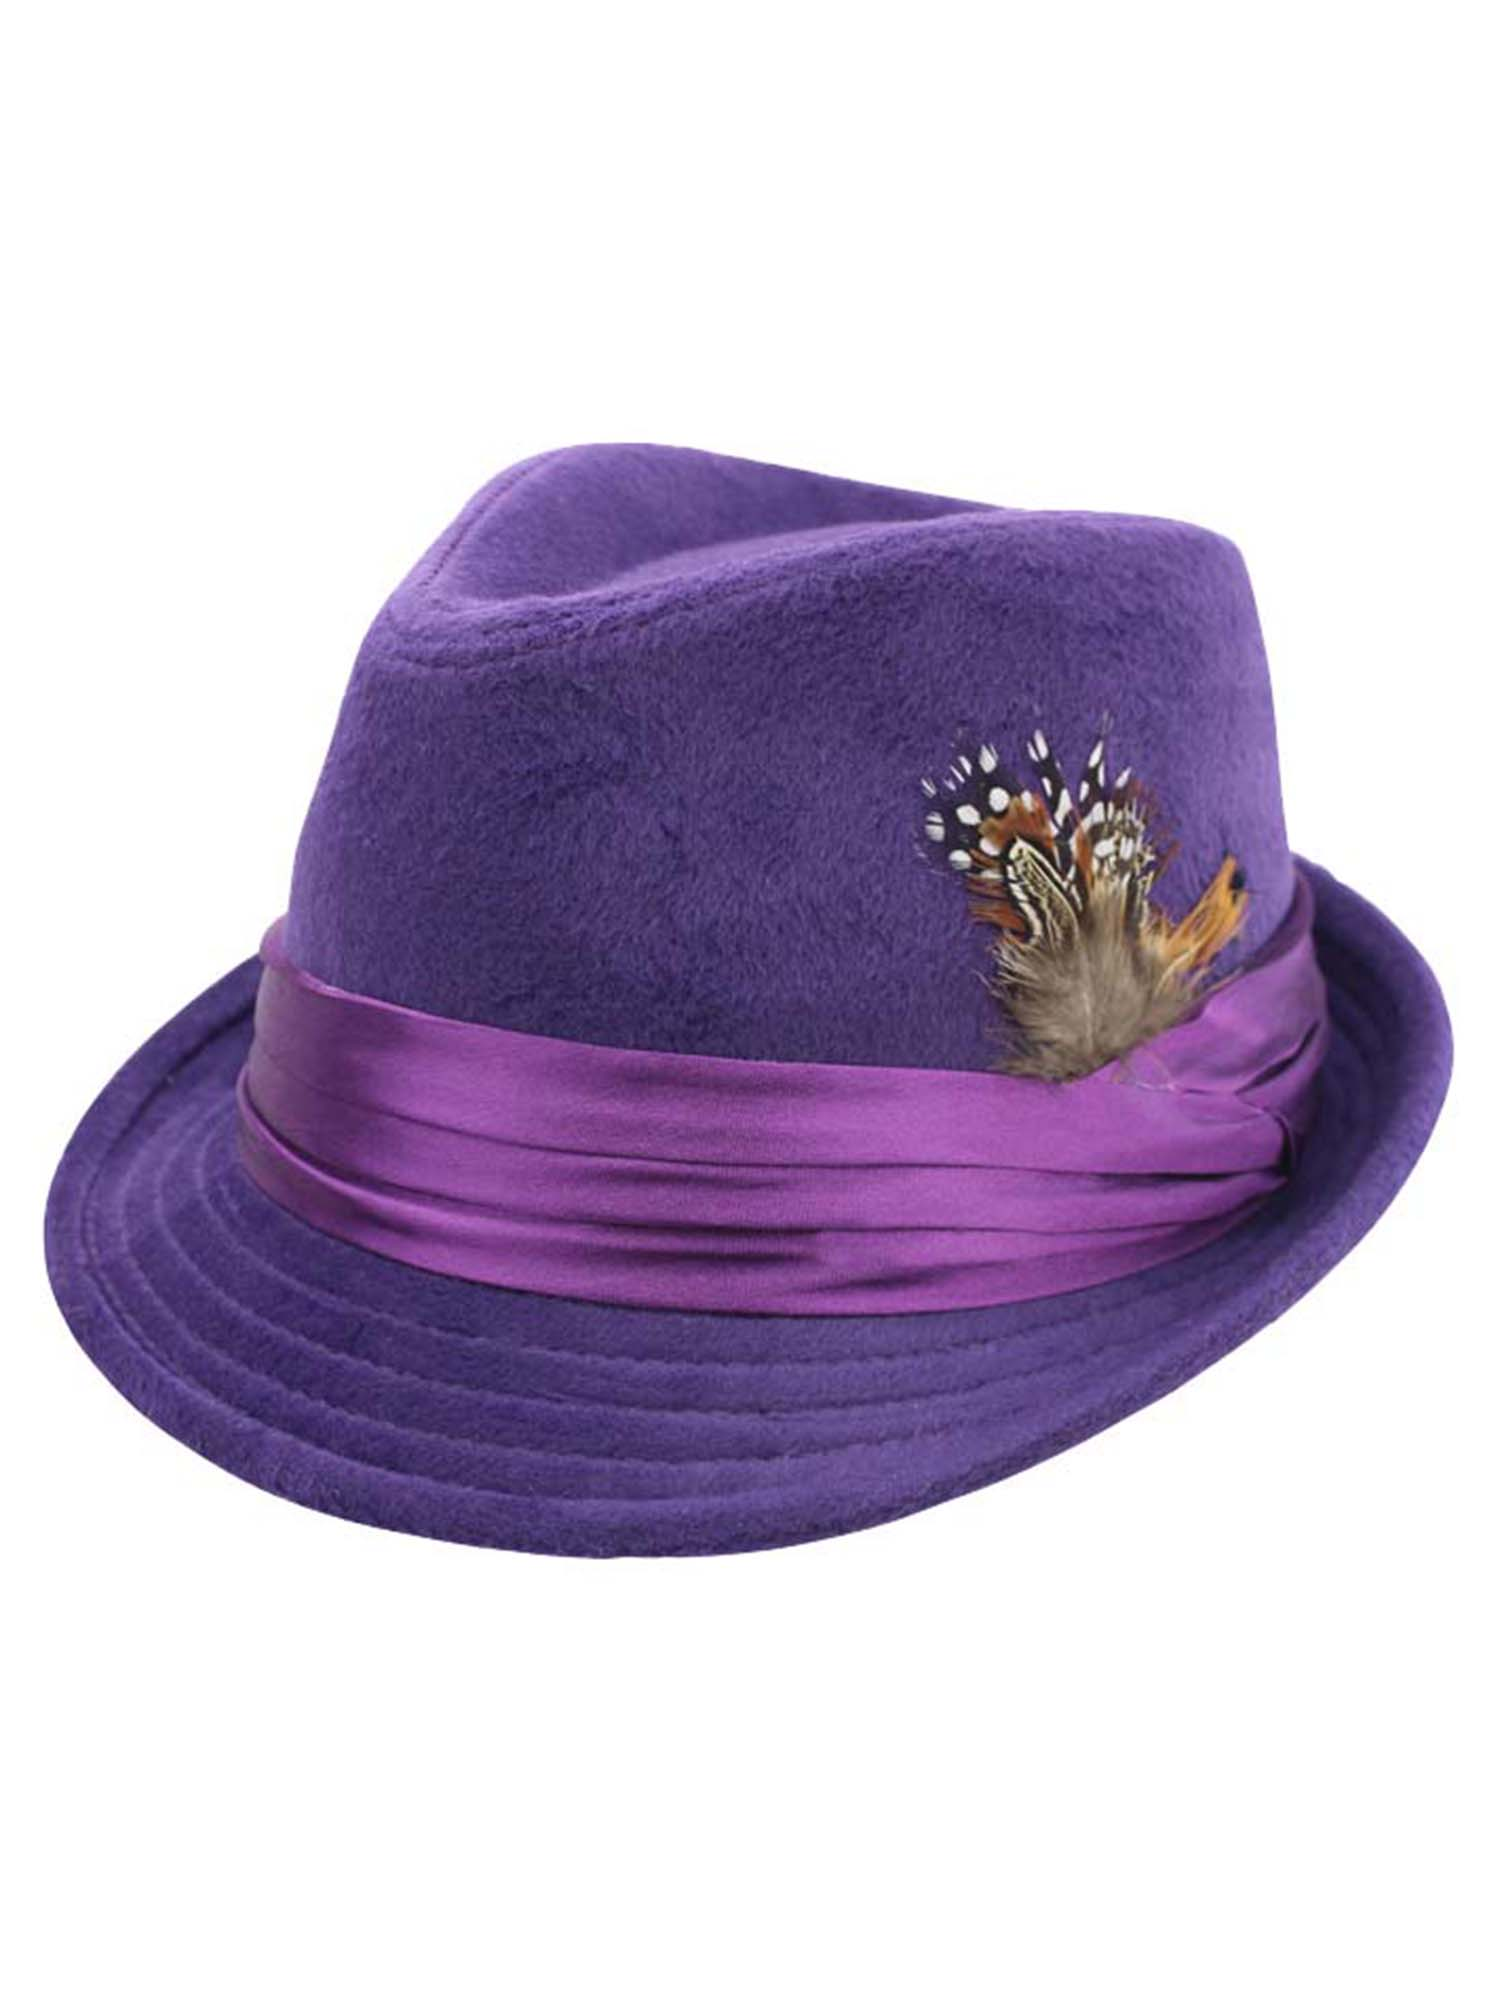 b33b29e11 Details about PURPLE WOOL FELT FEDORA HAT WITH FEATHER TRIM